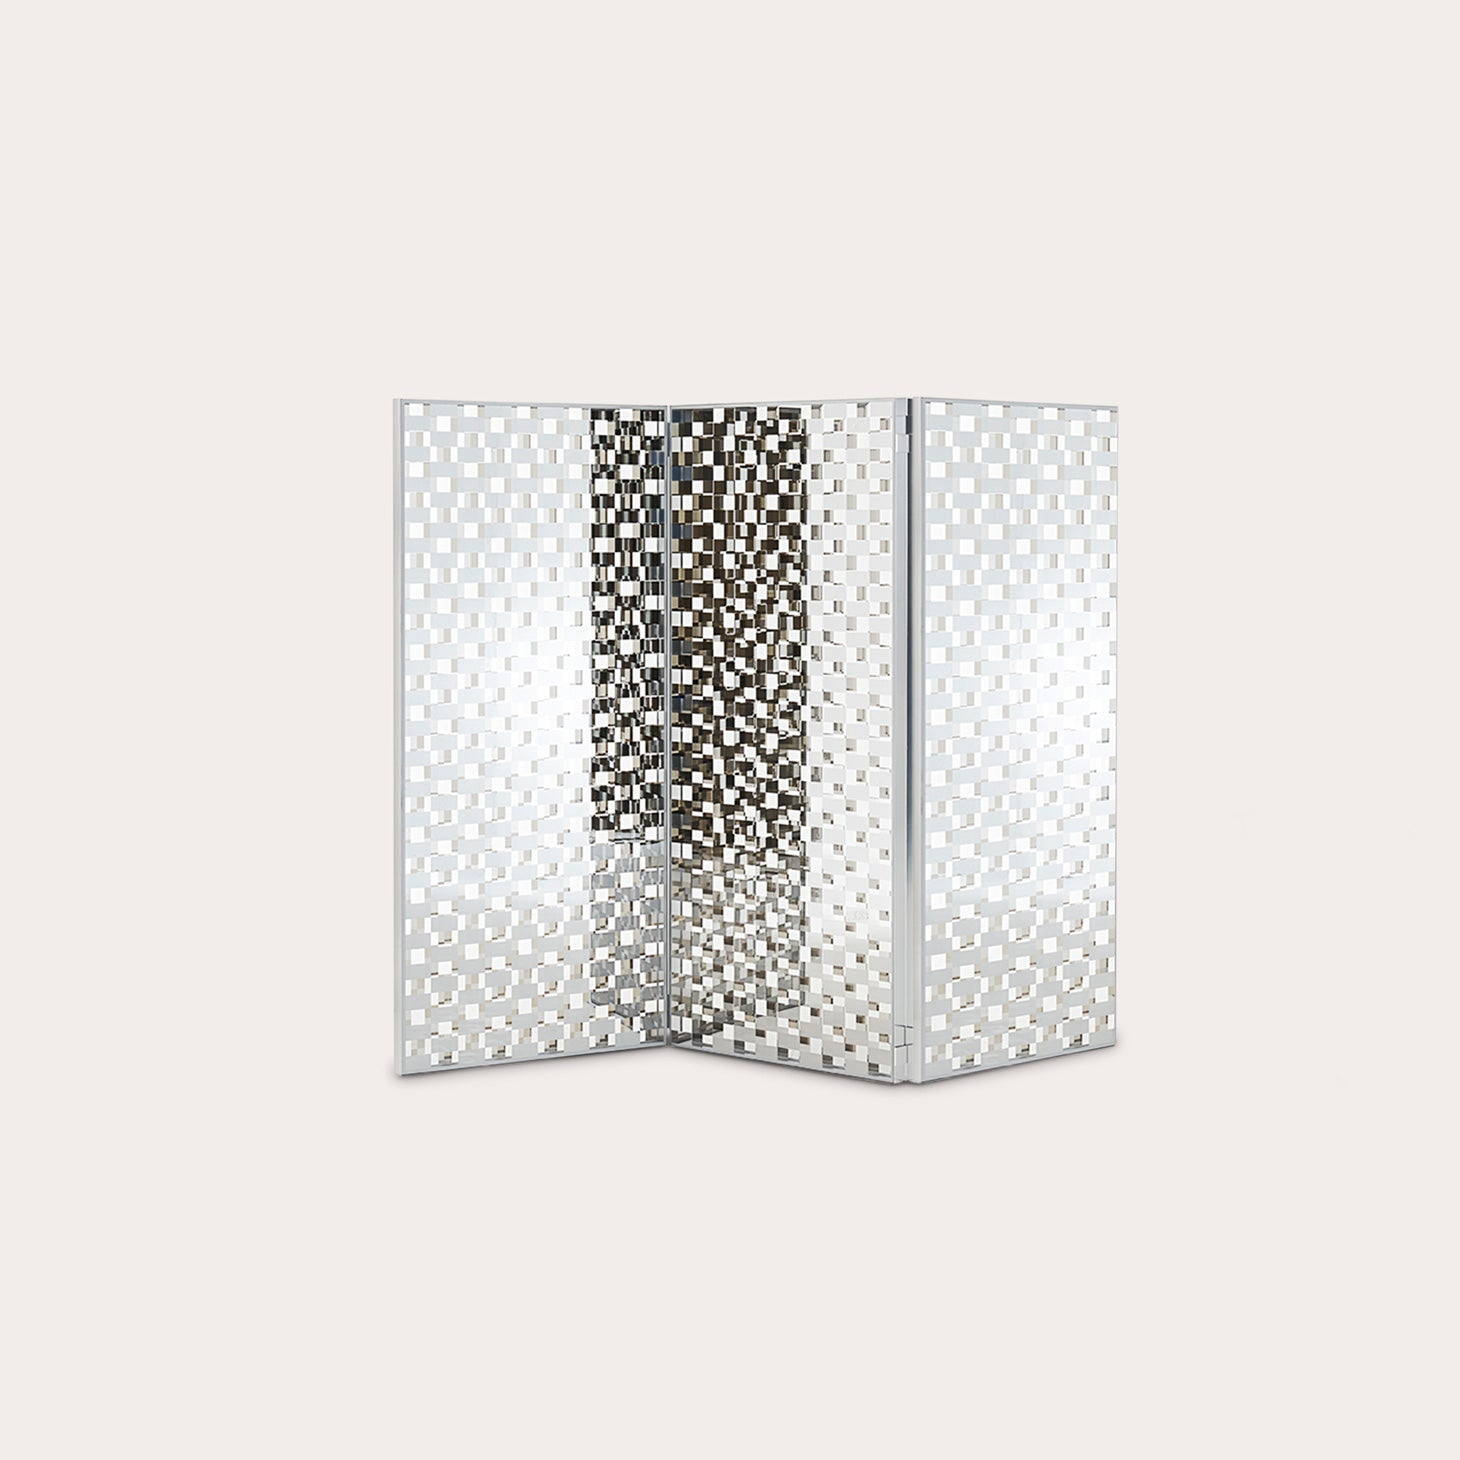 Fragment Screen Accessories Nendo Designer Furniture Sku: 288-100-10144